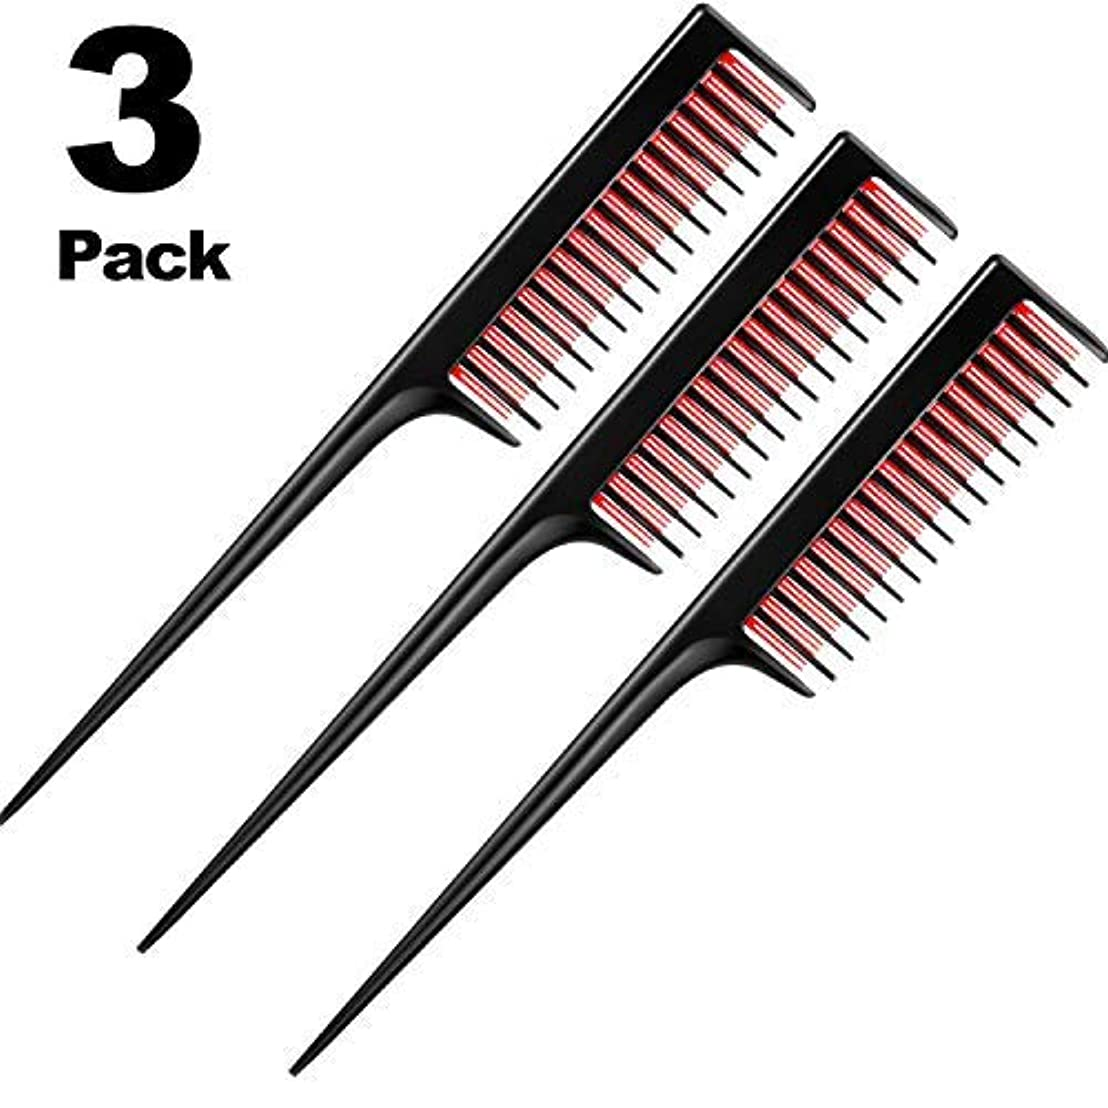 3 Piece Triple Teasing Comb, rat tail combs for women,Tool Structure Tease Layers Rattail Comb,Rat Tail Comb for...